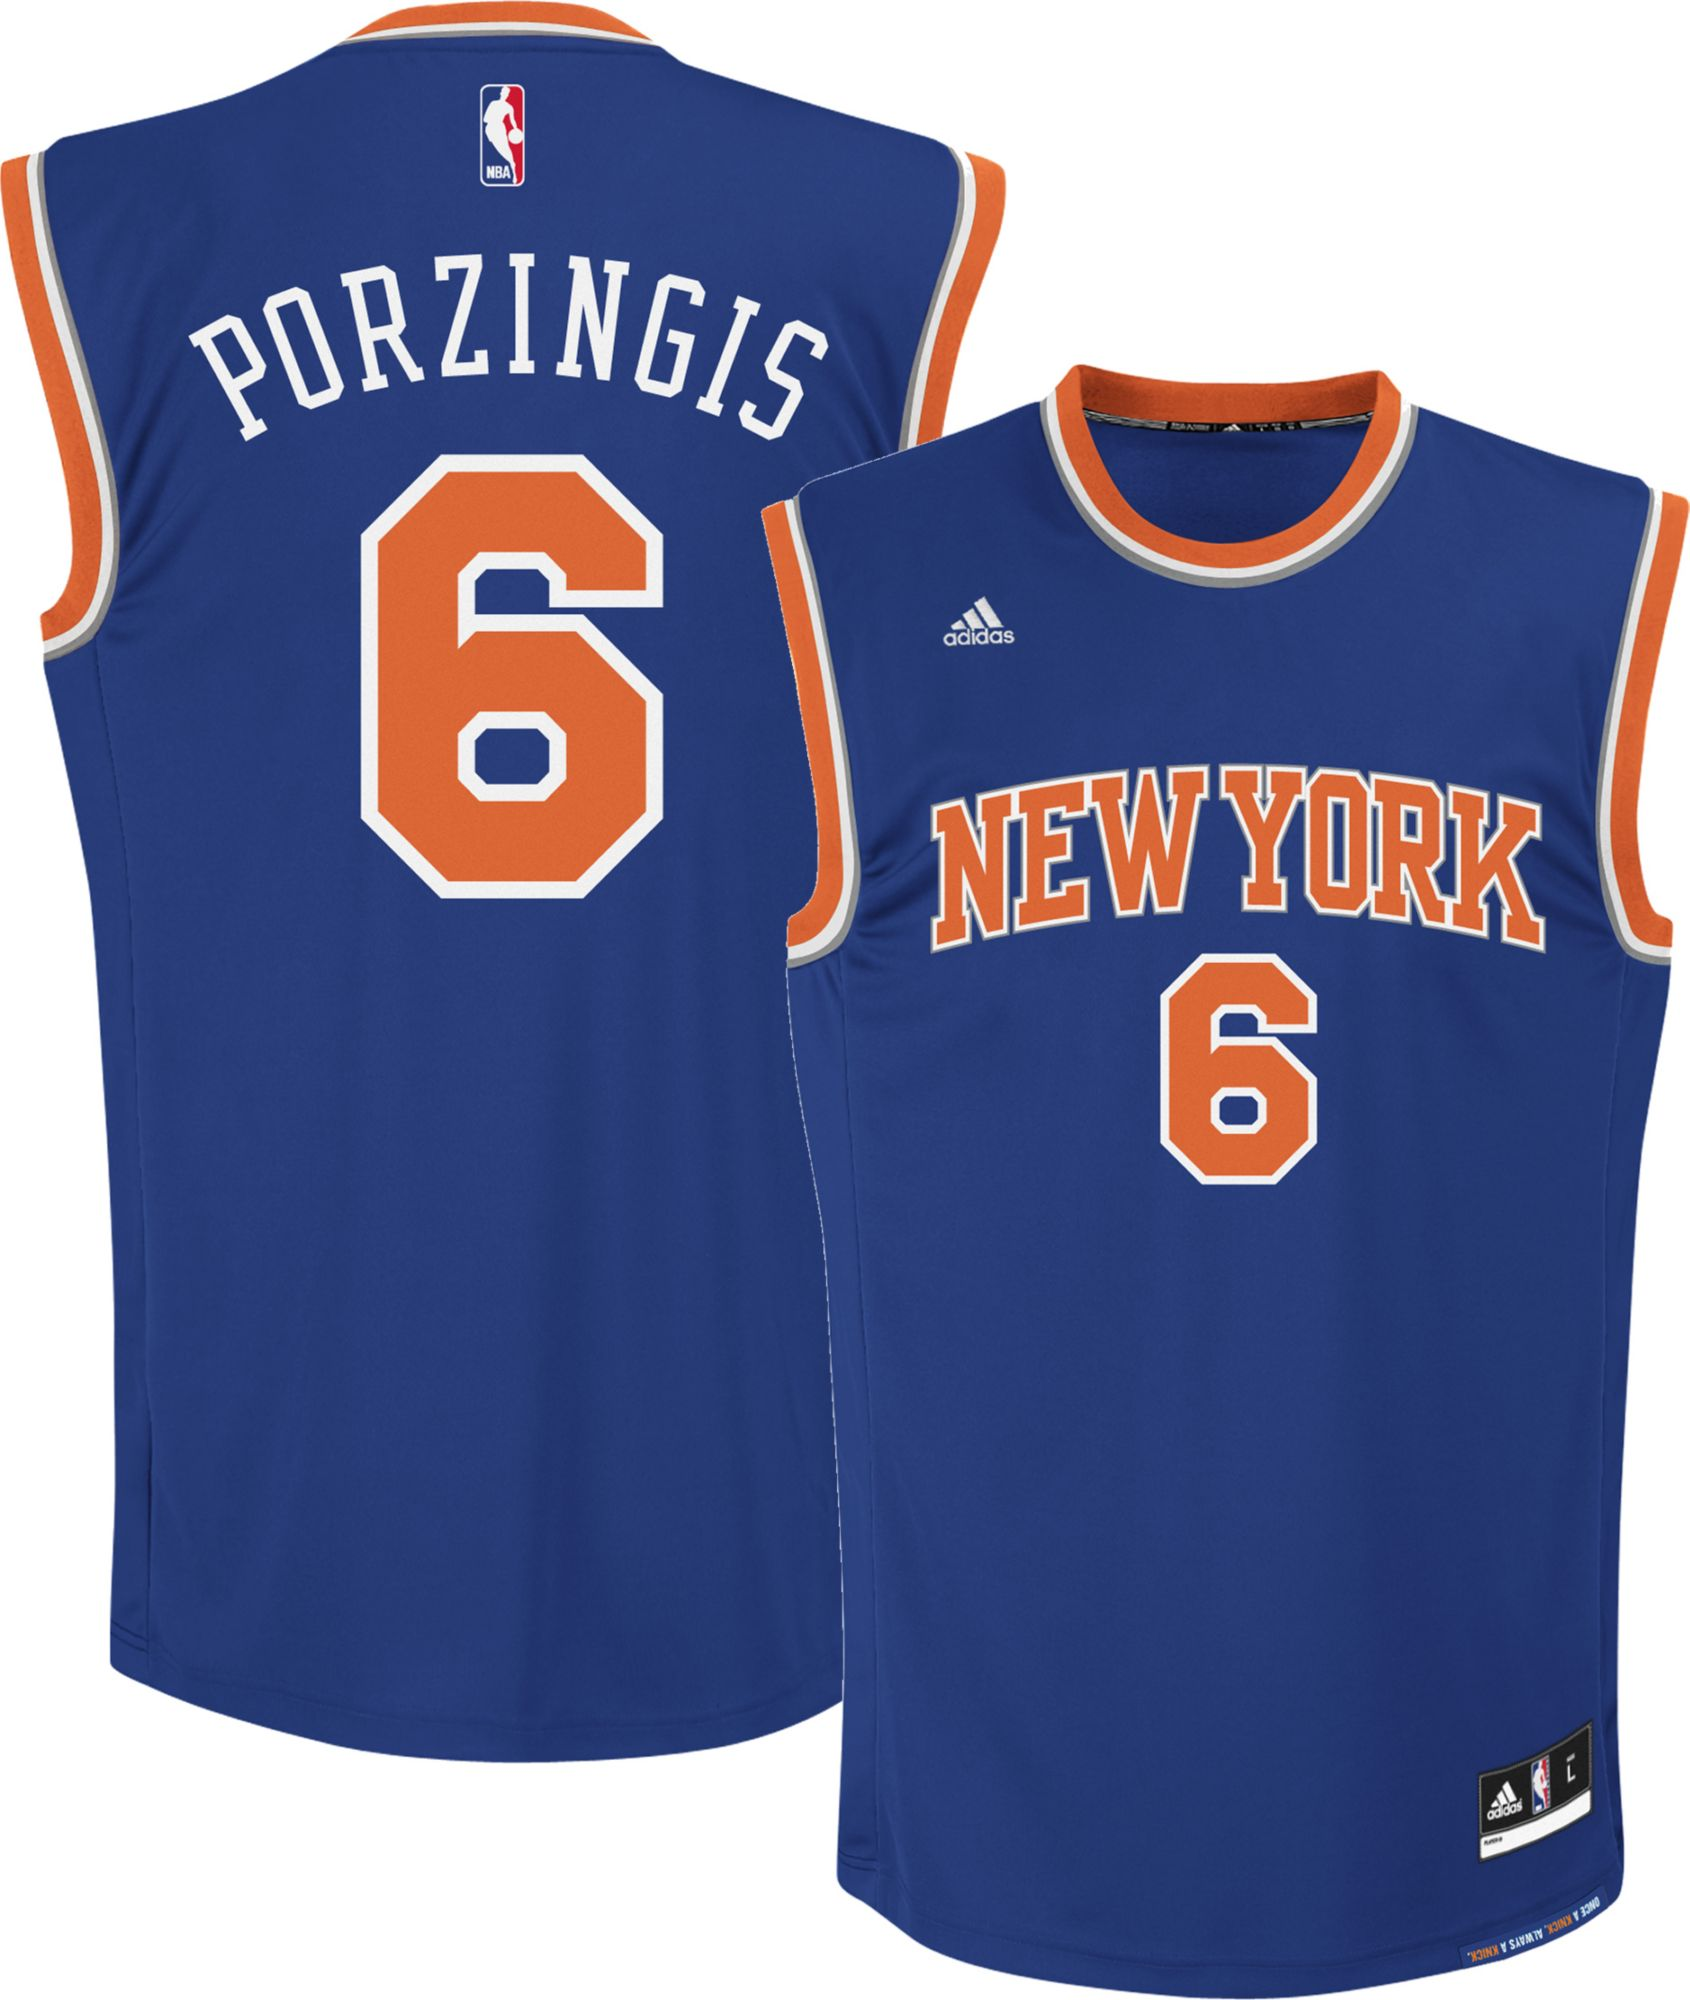 ... Blue Road Swingman Jersey - Kristaps Porzingis adidas Youth New York  Knicks Kristaps Porzingis 6 Road Royal ... 9d69073db